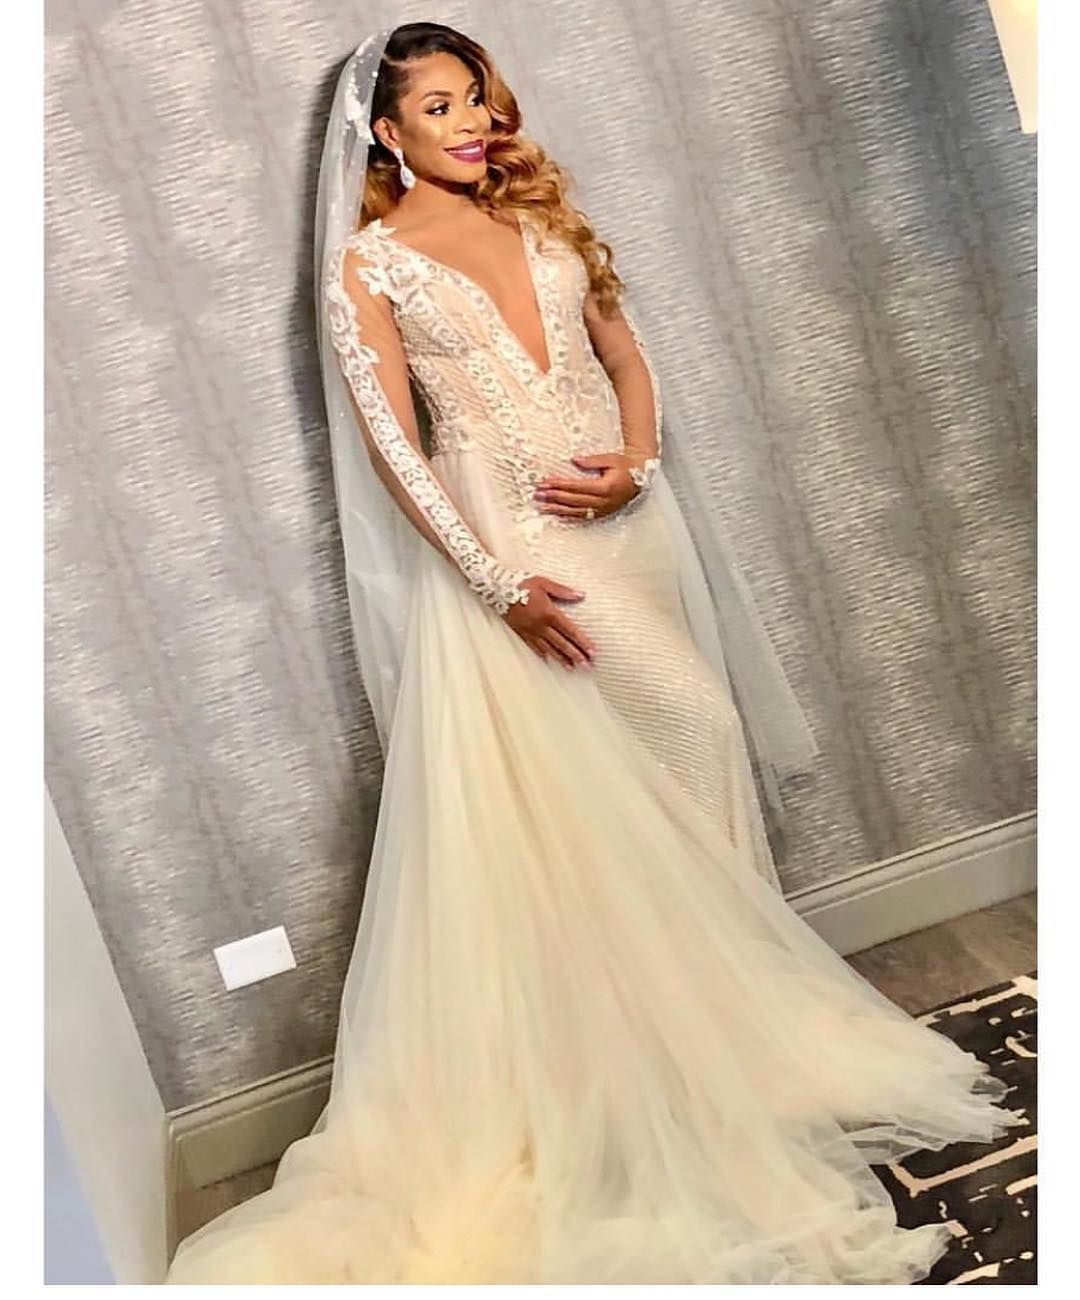 Affordable Custom Wedding Dresses Inspired By Haute Couture Designs Wedding Dresses Pregnant Wedding Dress Maternity Bridal Gowns